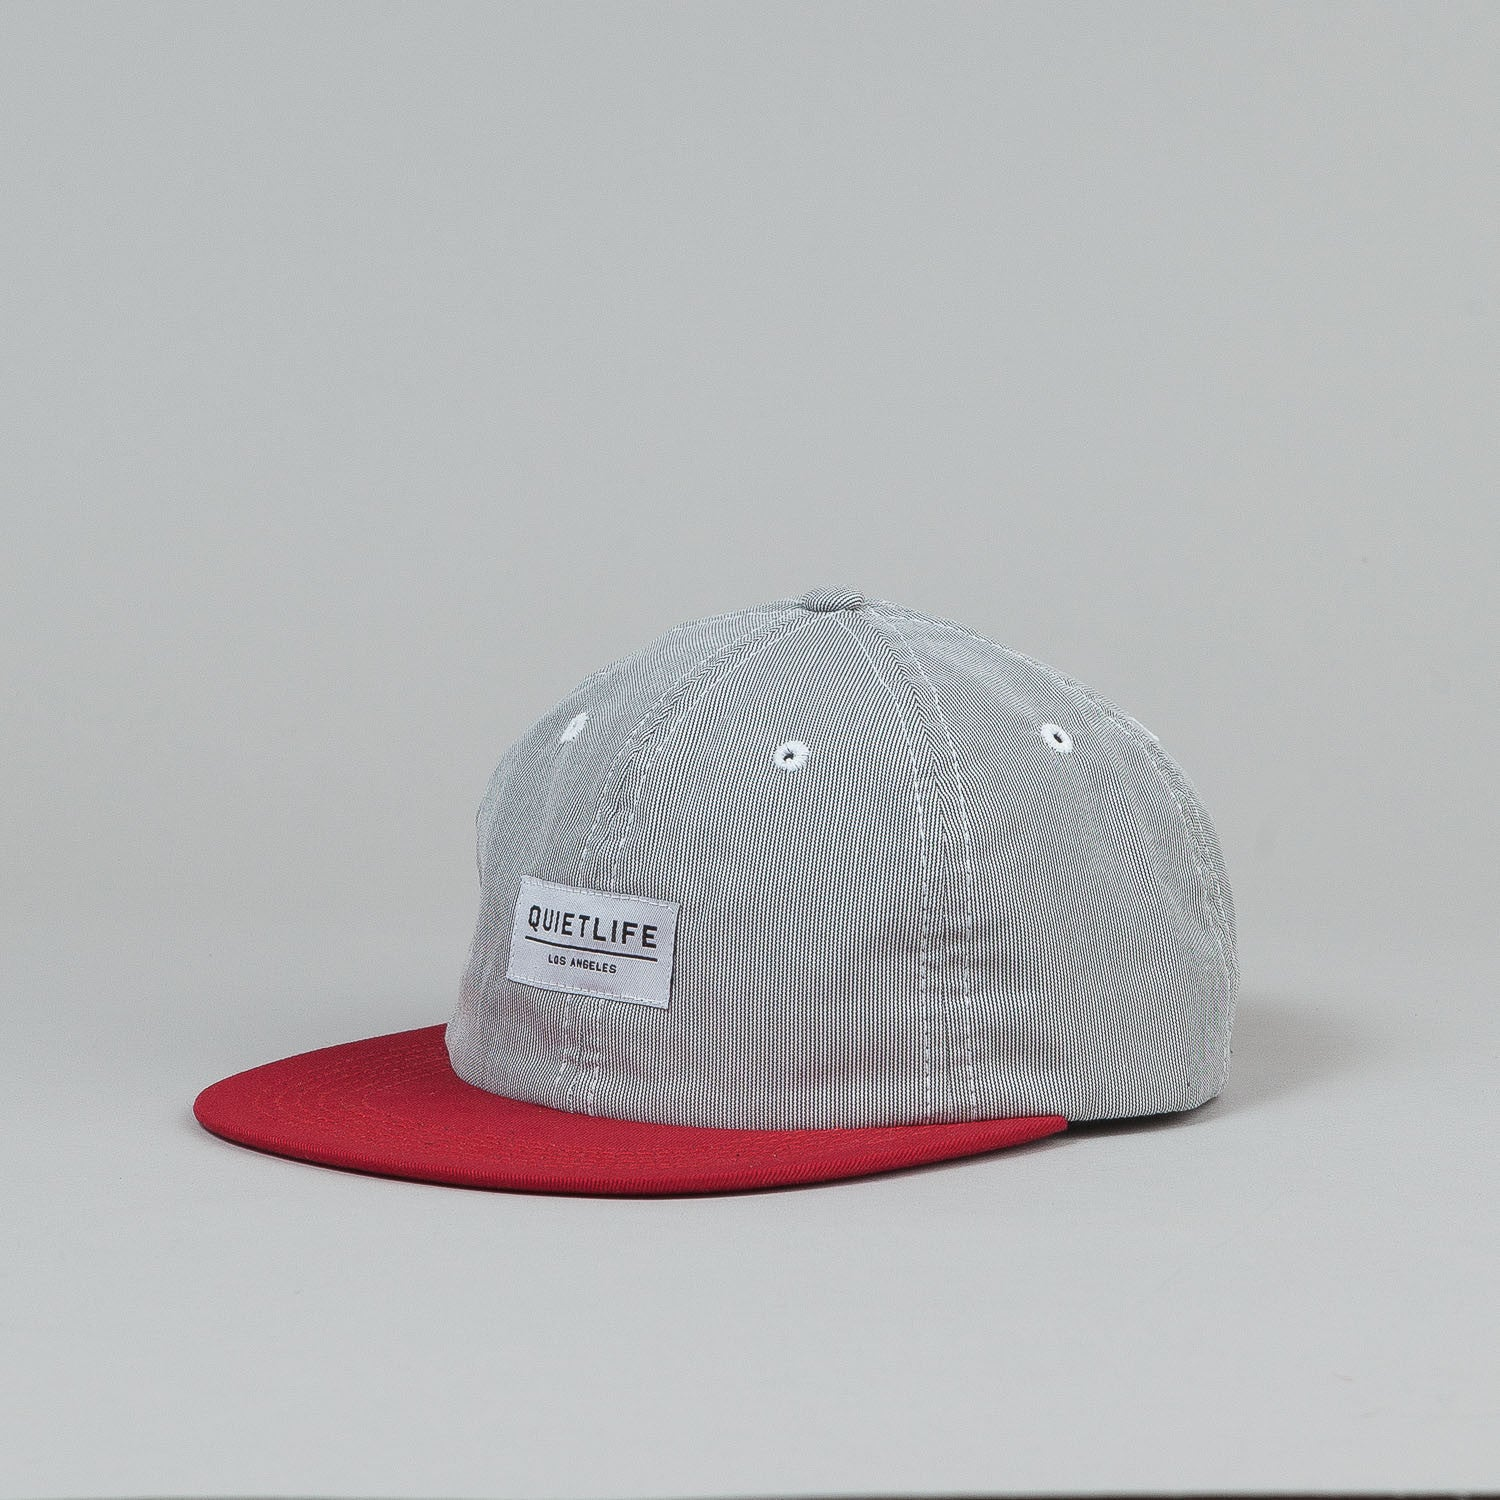 The Quiet Life Pincord Polo 6 Panel Cap